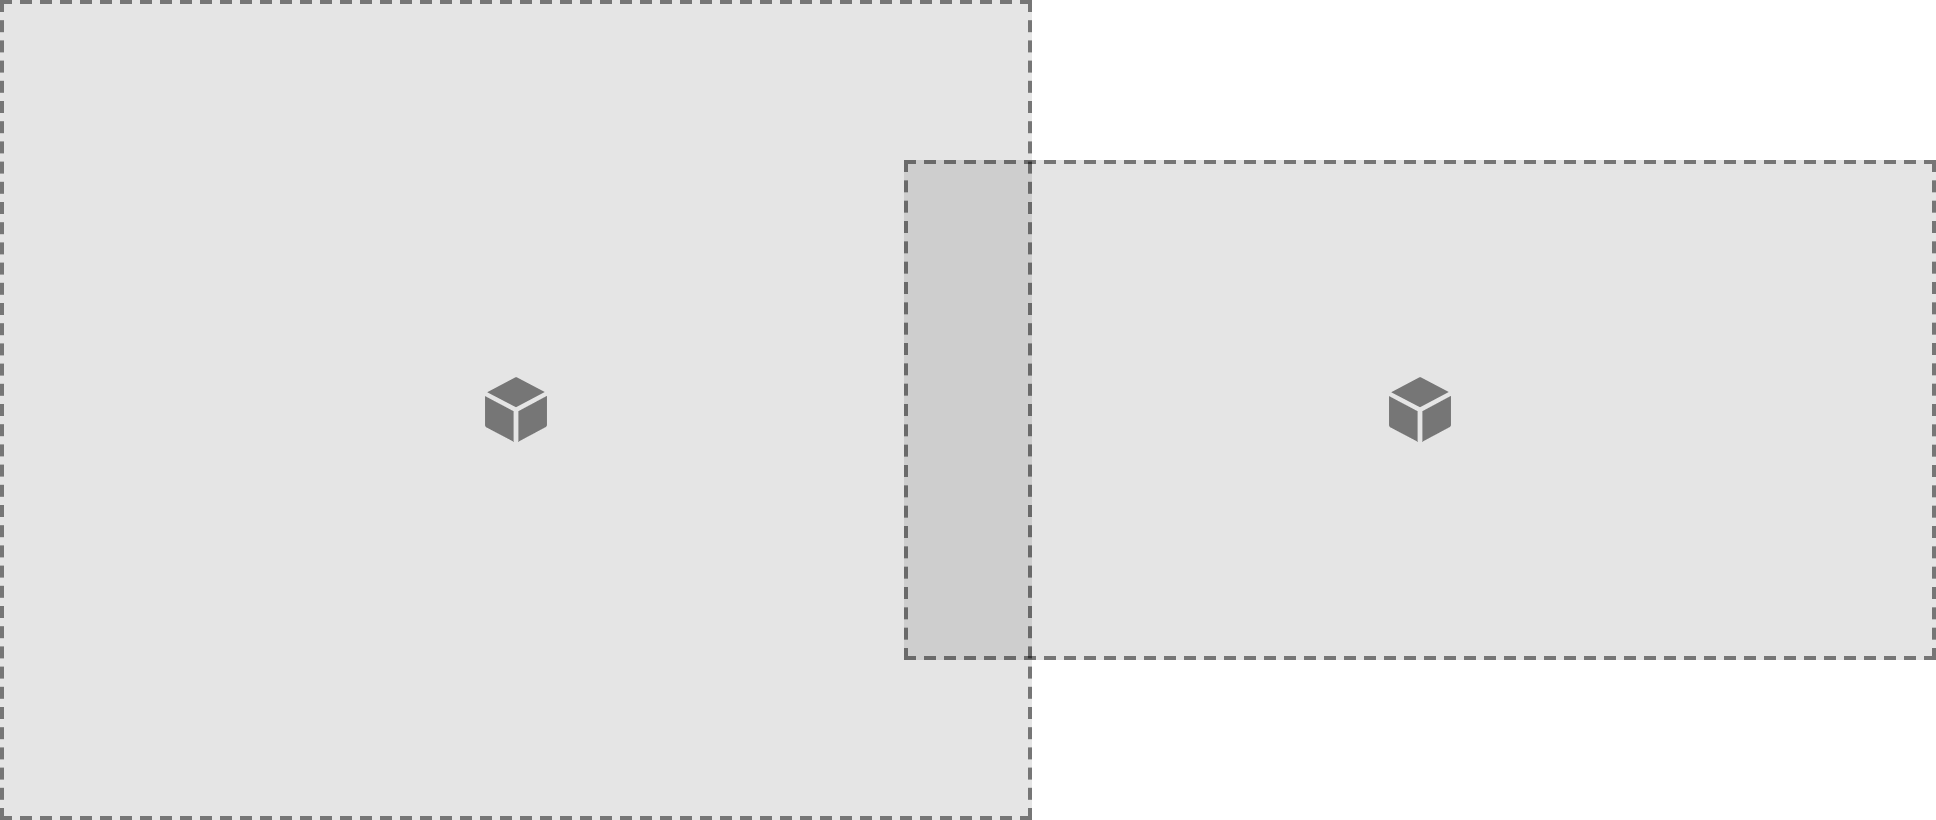 Overlapping Cells Example